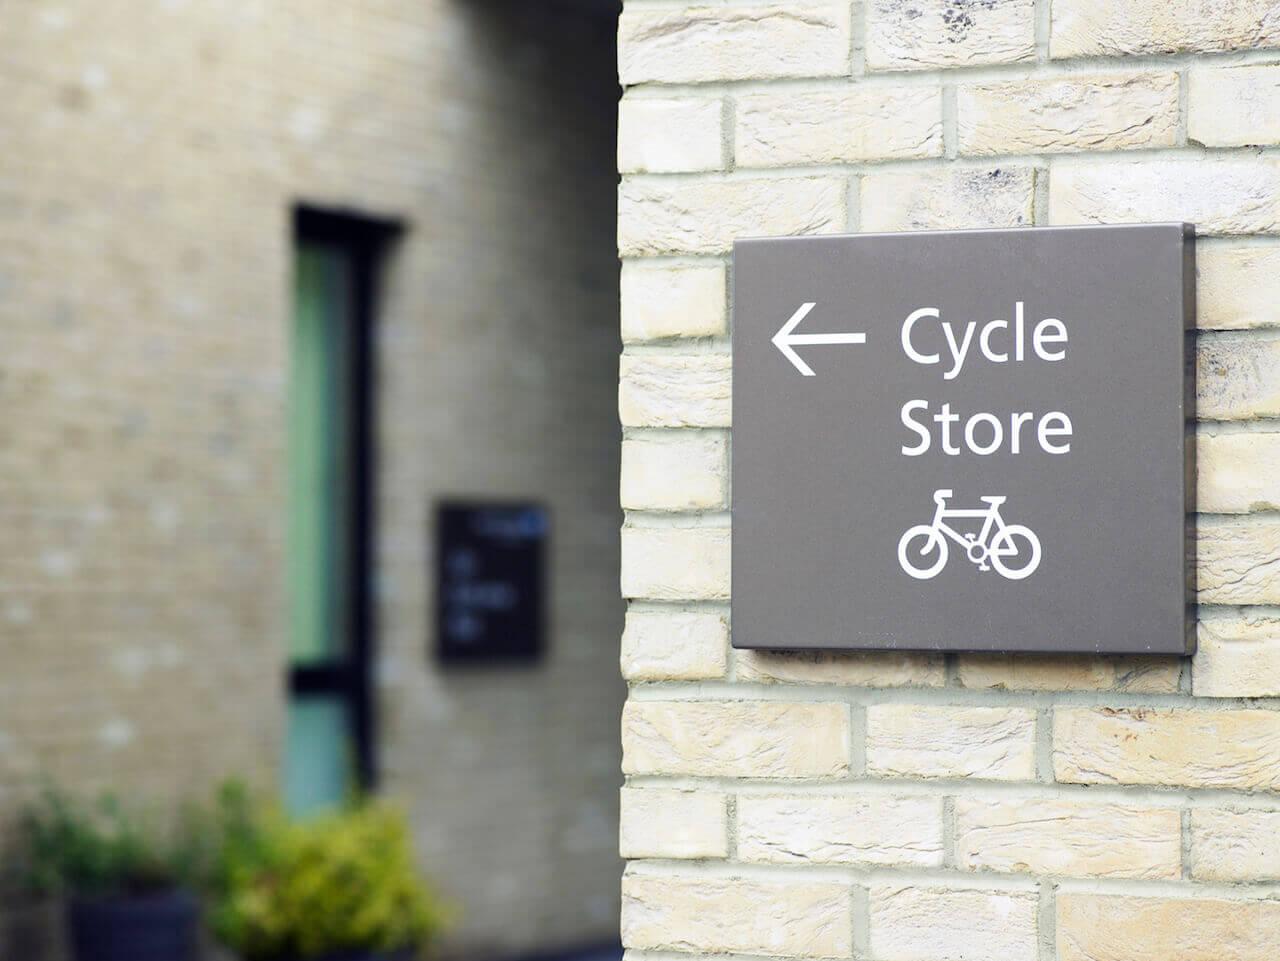 An external wall sign with a cycle logo showing the directions to the cycle store